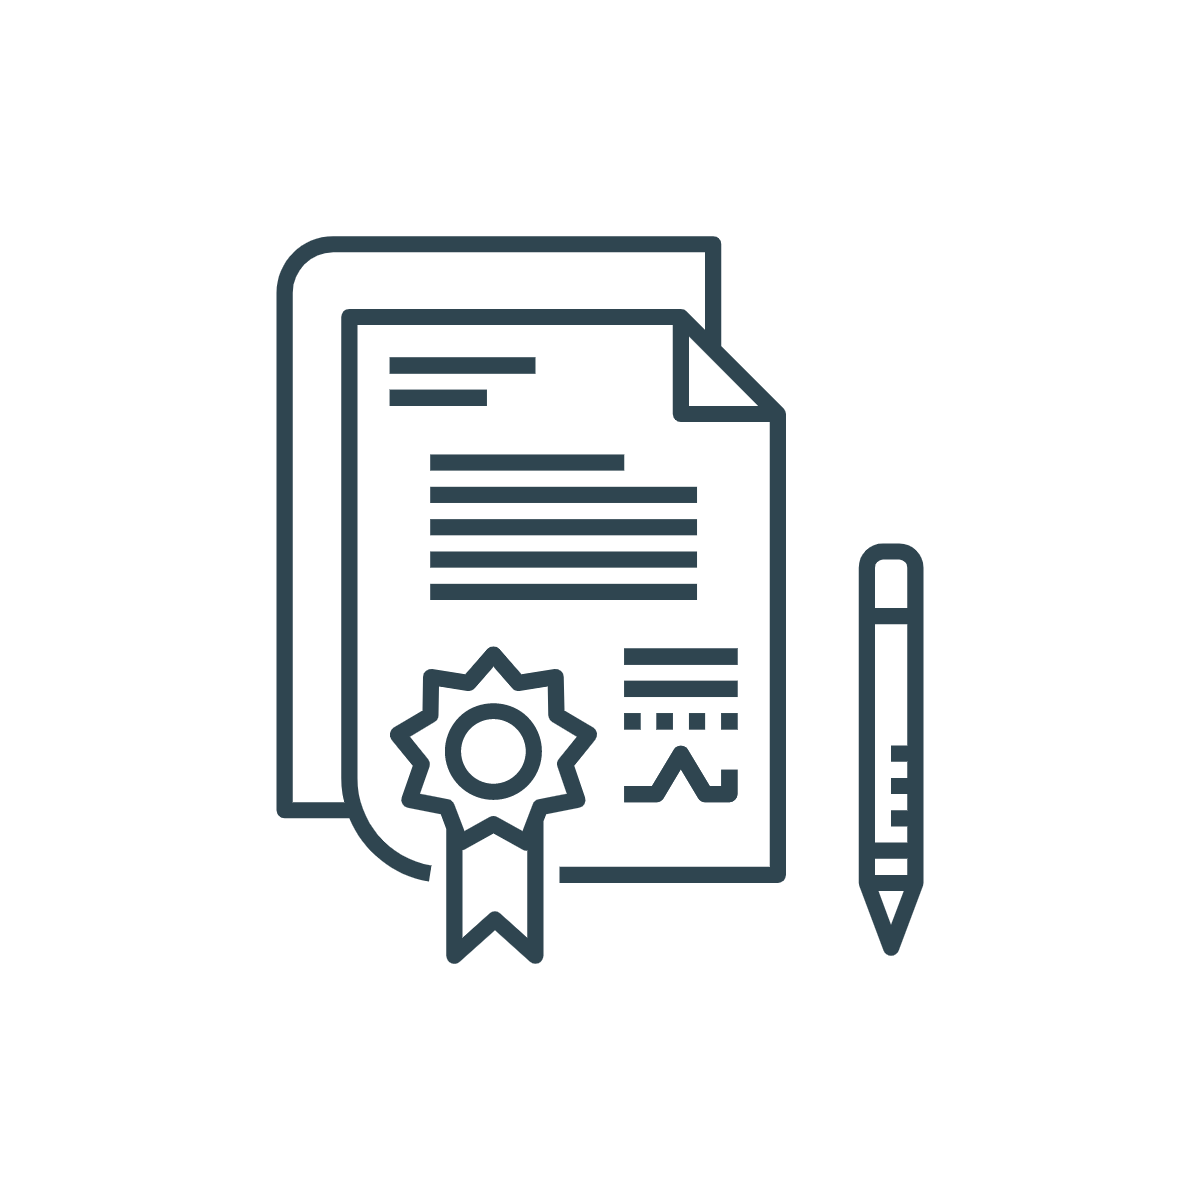 icon of documents with star pasted on it